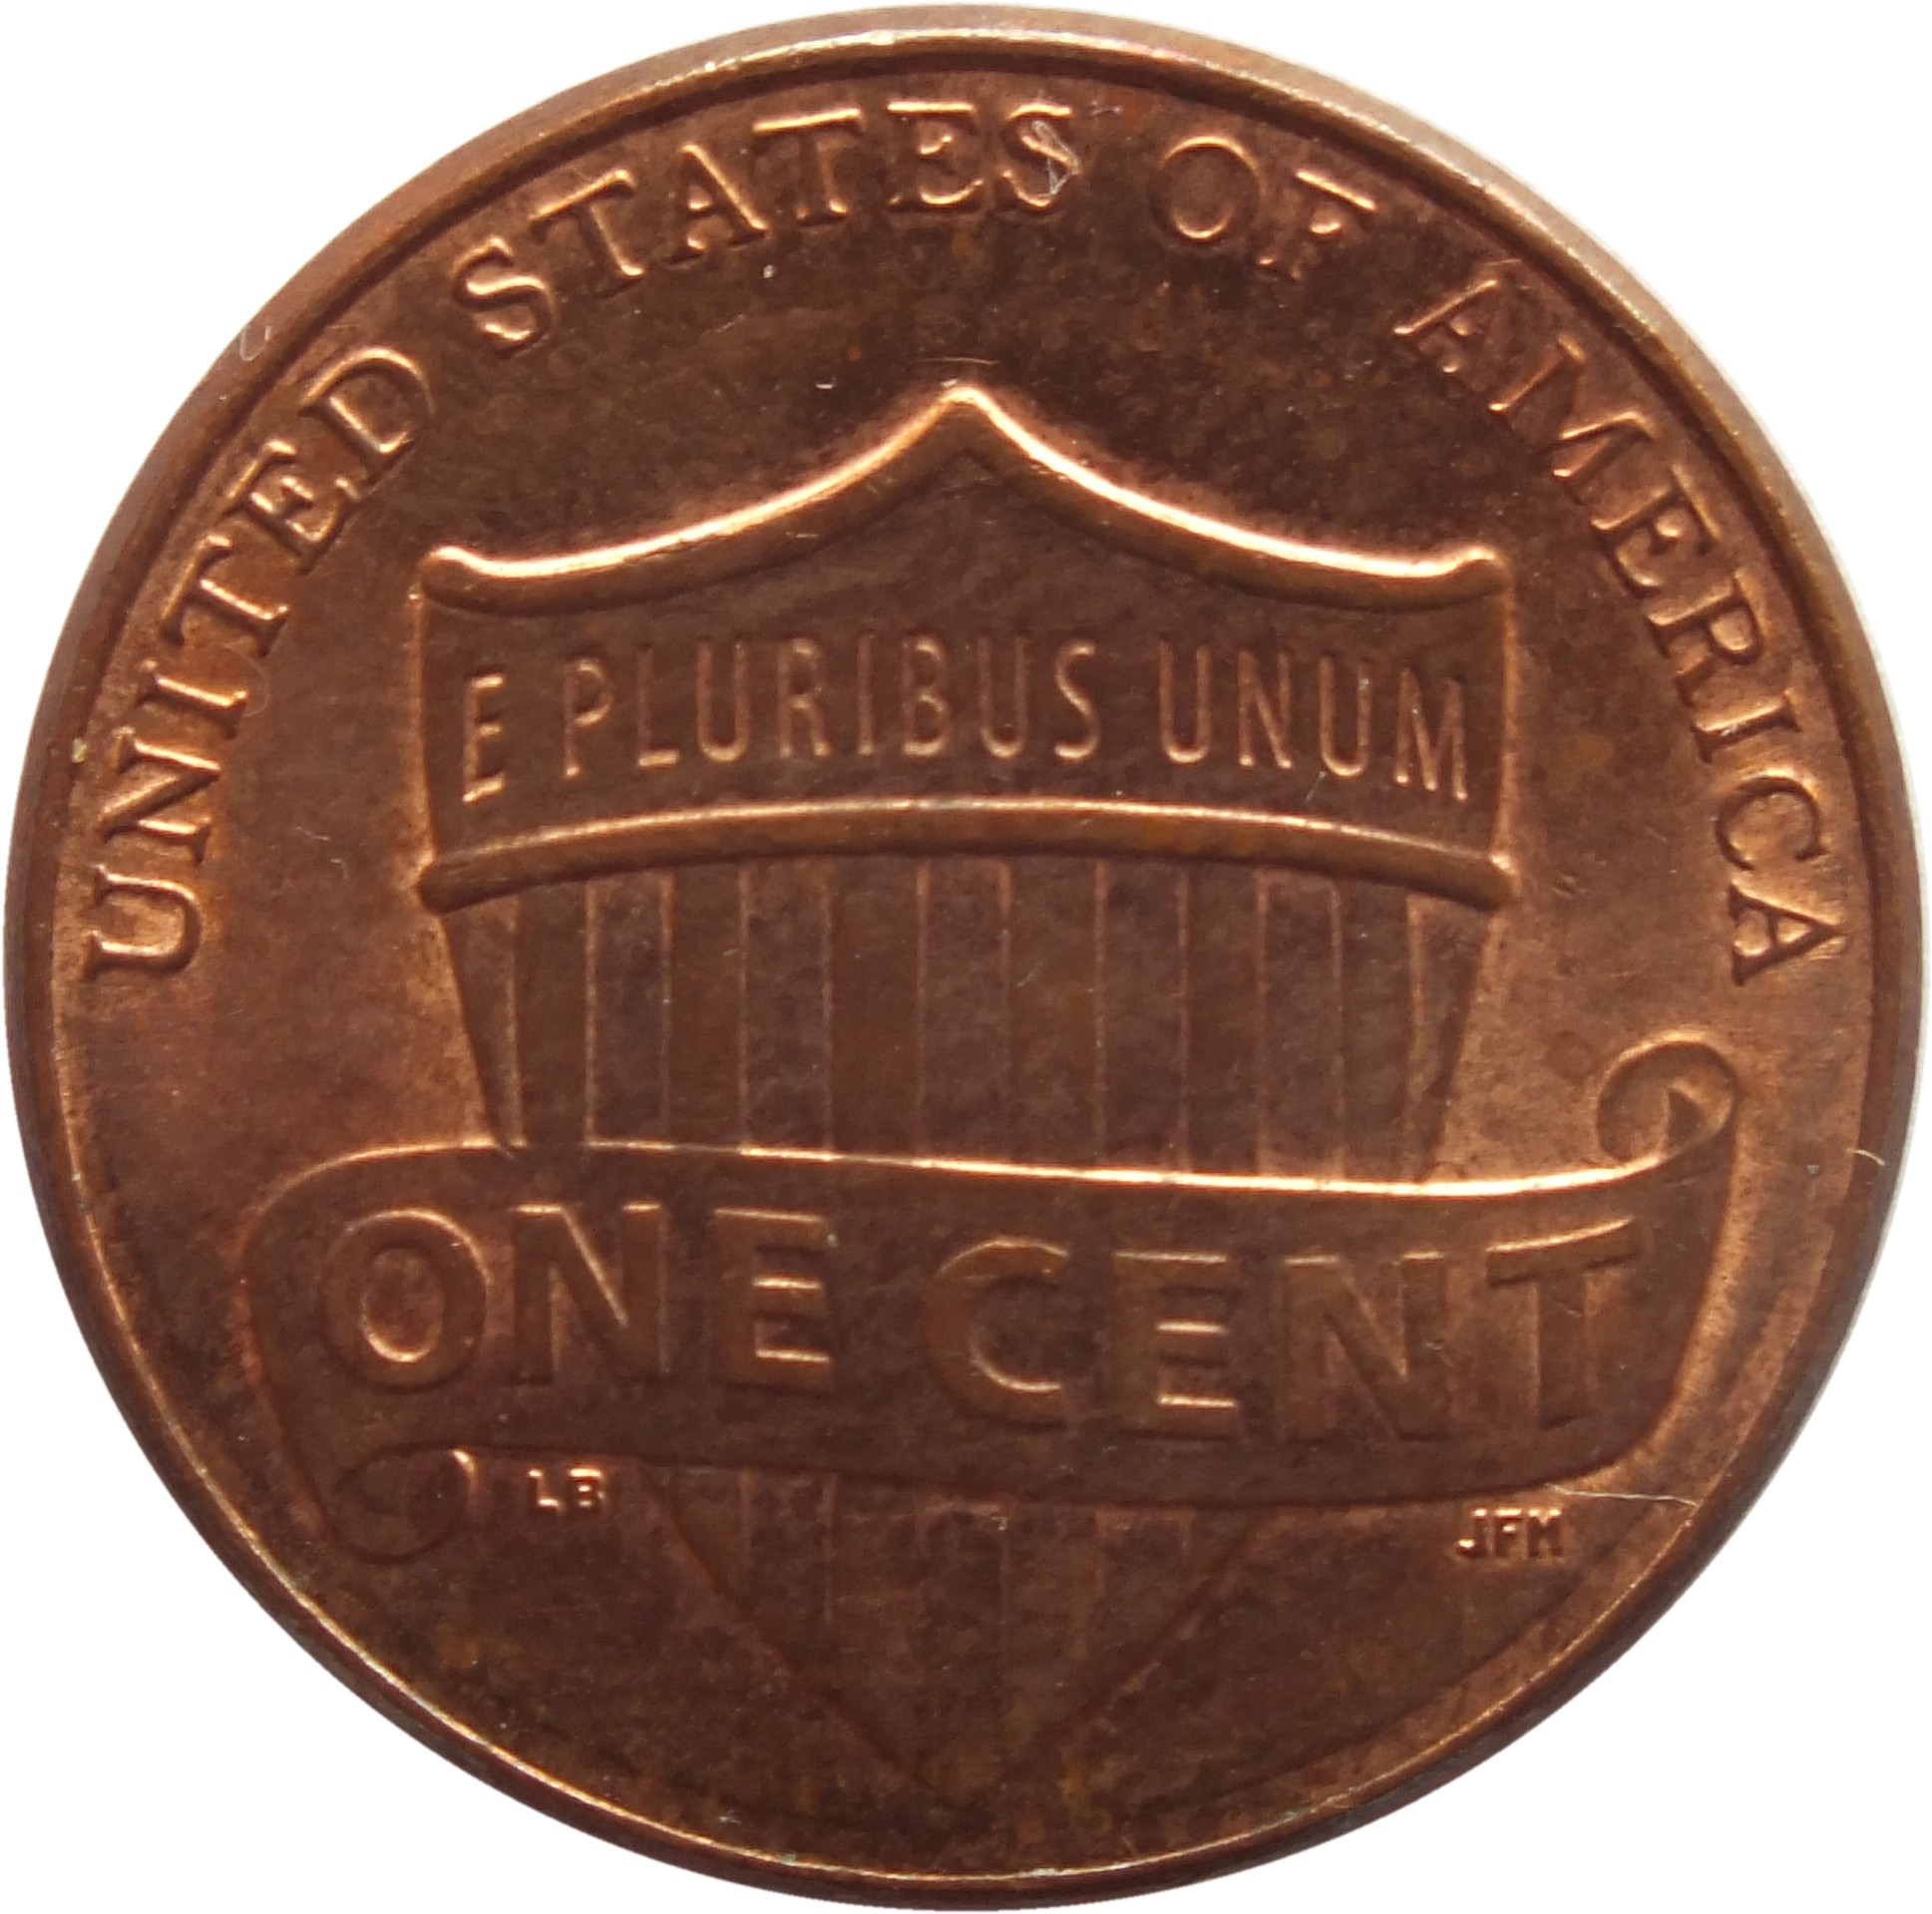 1 Cent Lincoln Cent Union Shield 2010 2016 United States Km 468 Coinsbook